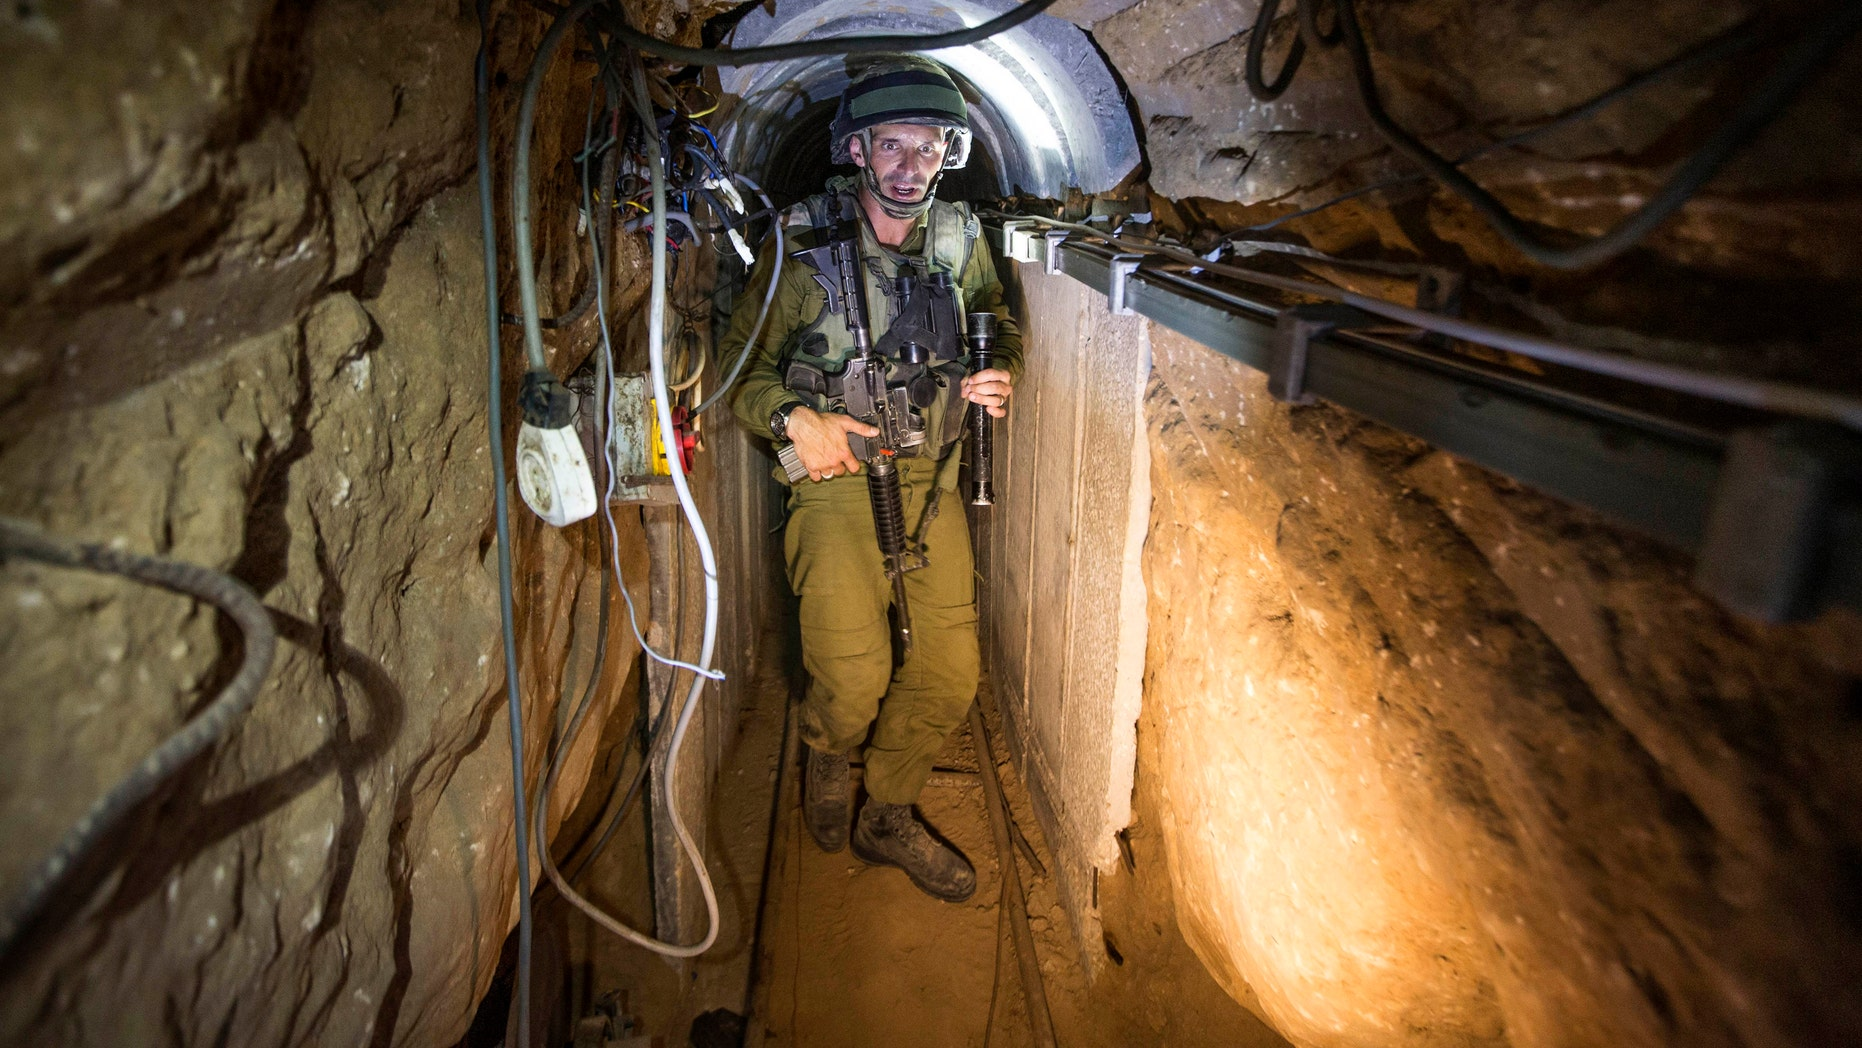 An Israeli army officer gives explanations to journalists during an army organised tour in a tunnel said to be used by Palestinian militants for cross-border attacks.